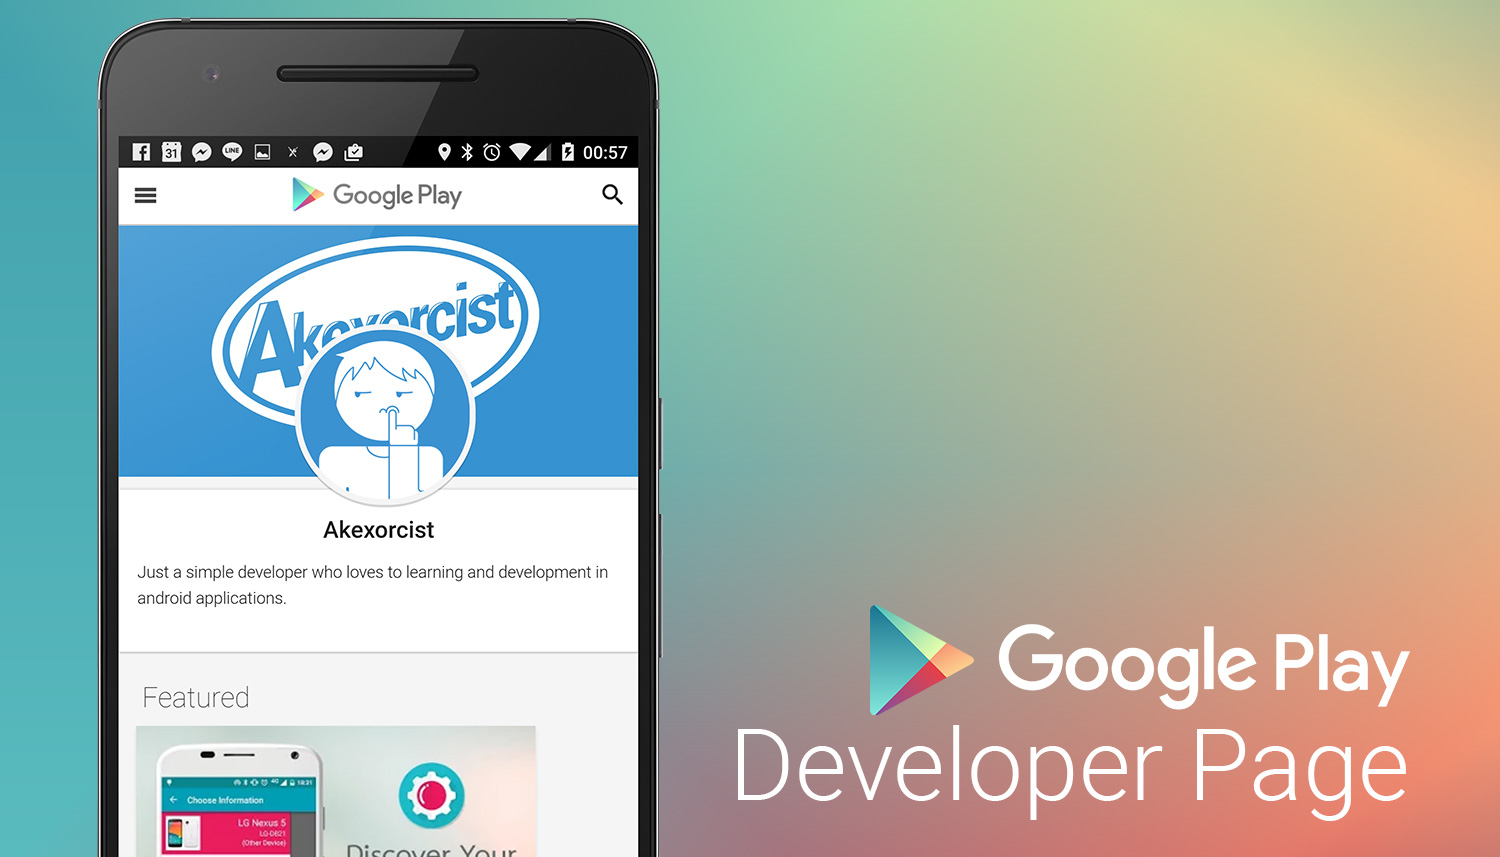 [Android Dev Tips] มาเพิ่ม Developer Page ใน Google Play ...